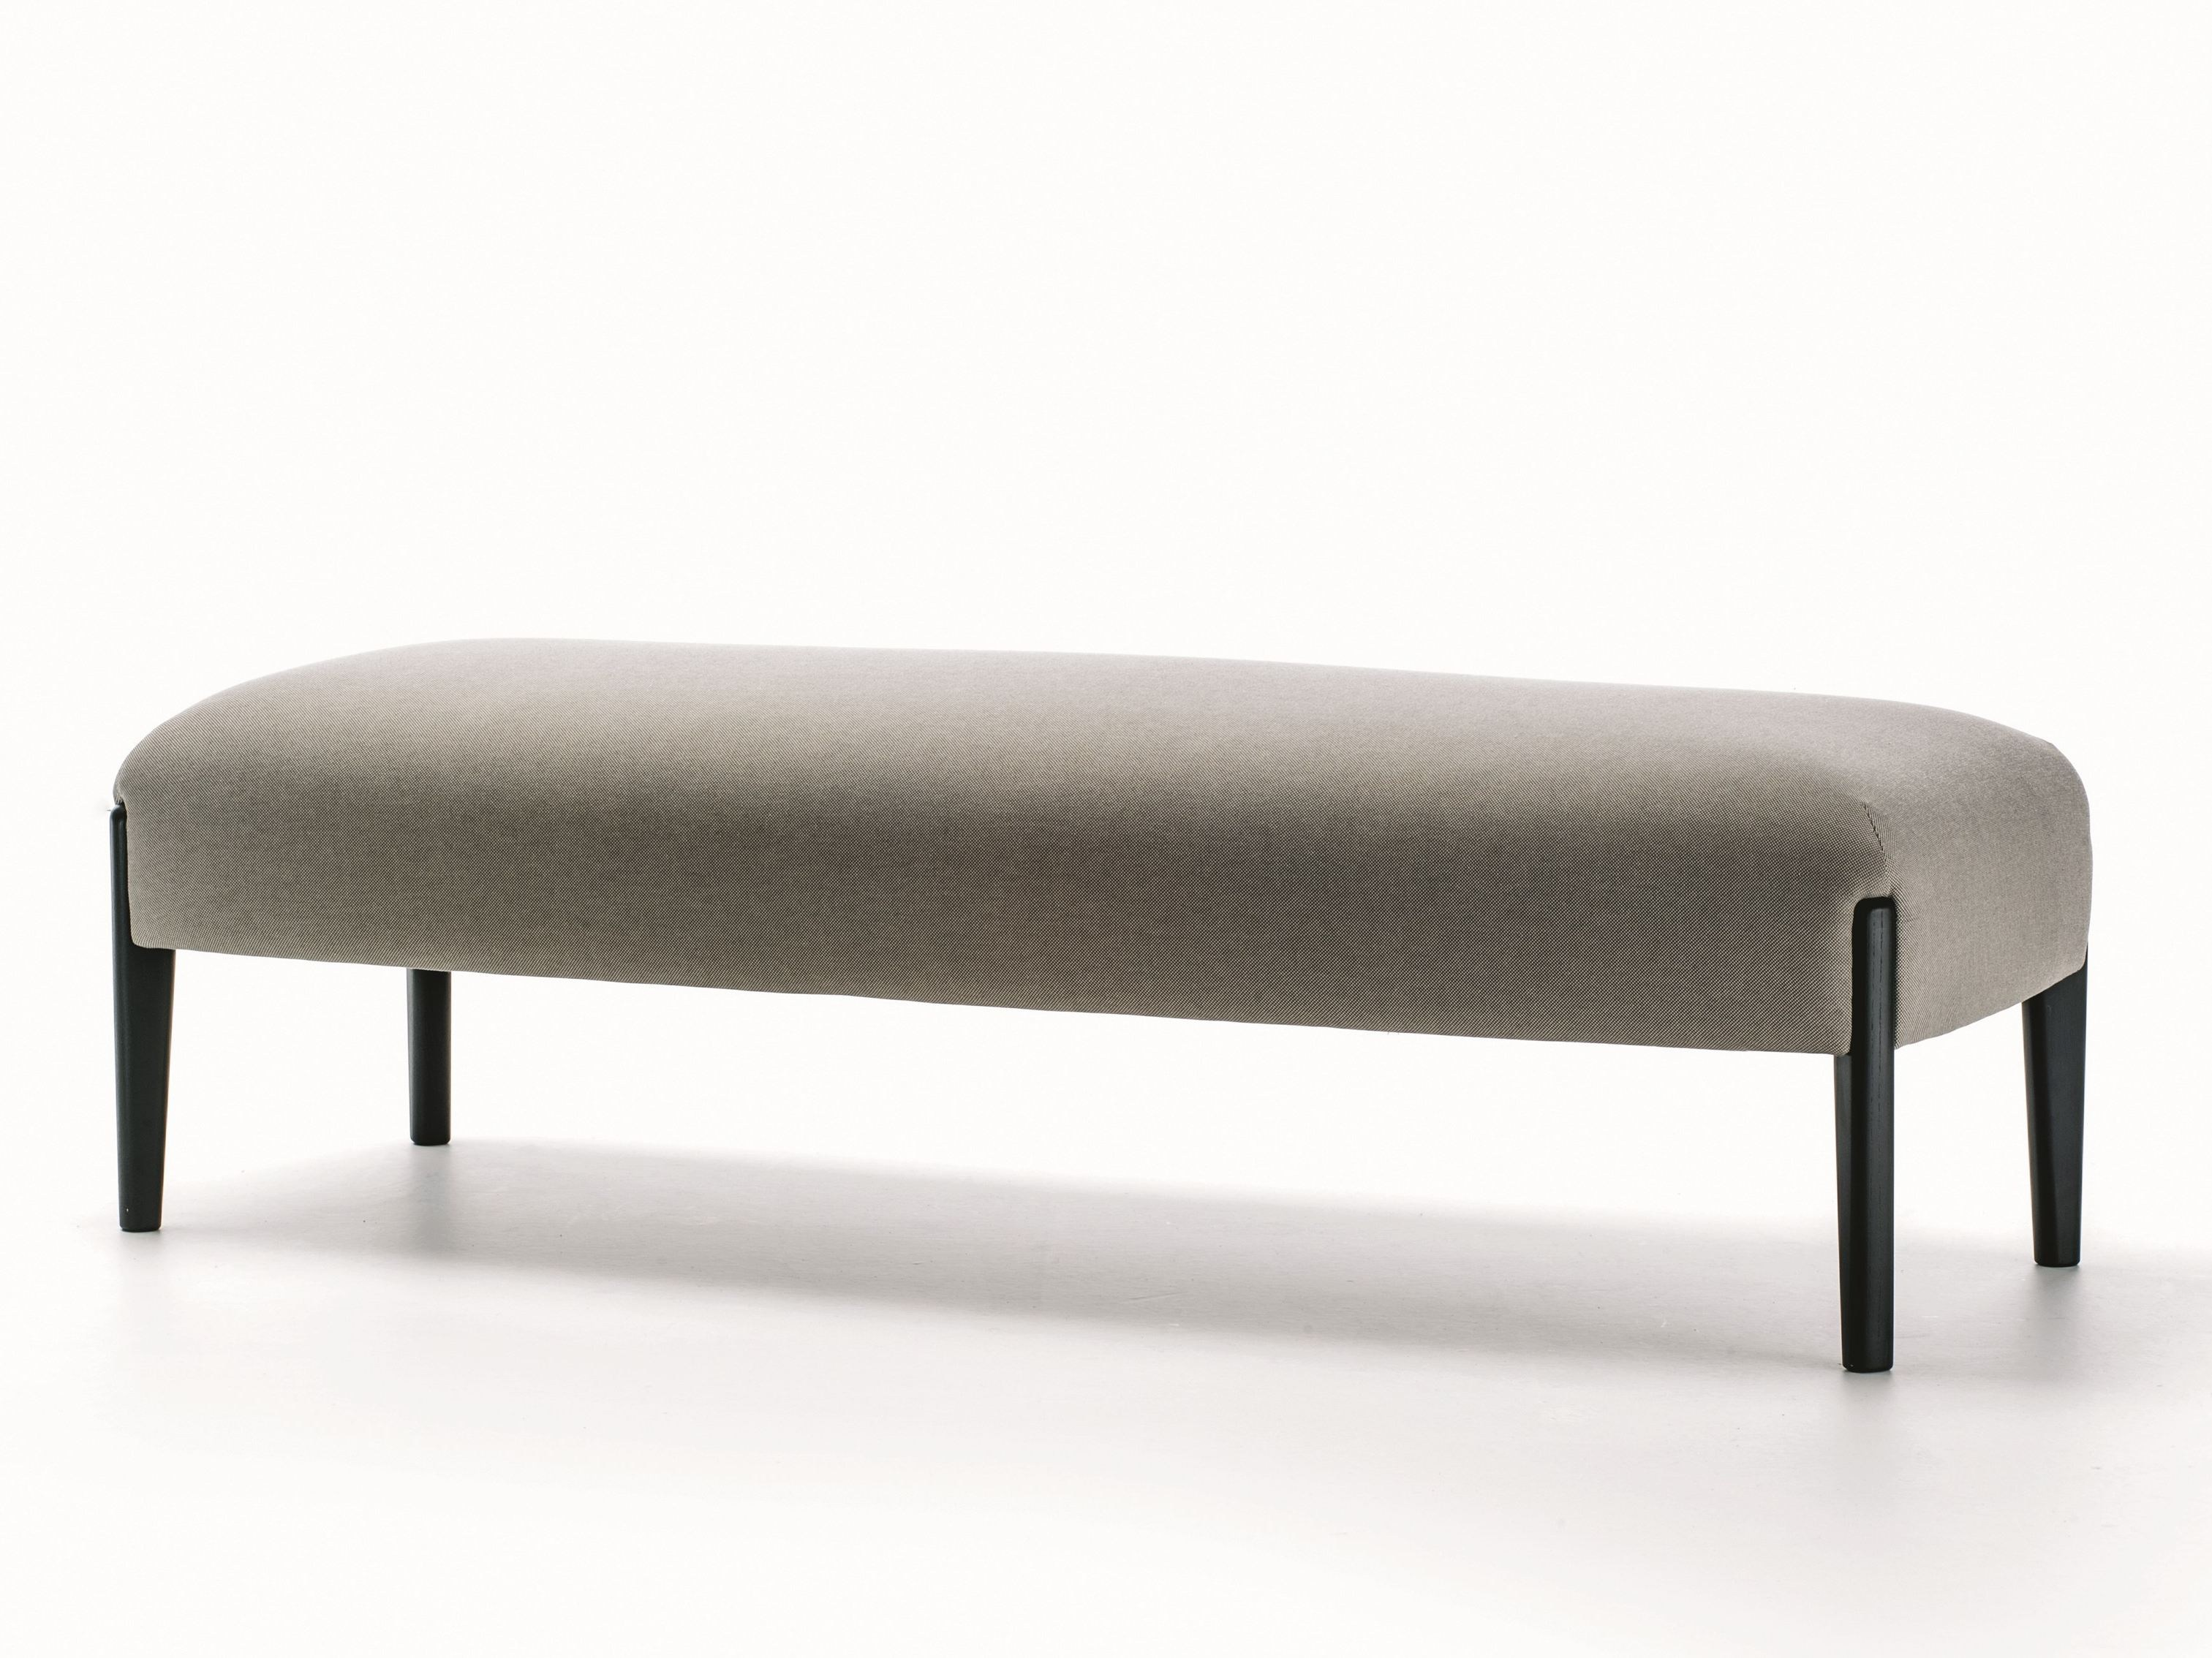 JOIN Contemporary Style Bench By La Cividina